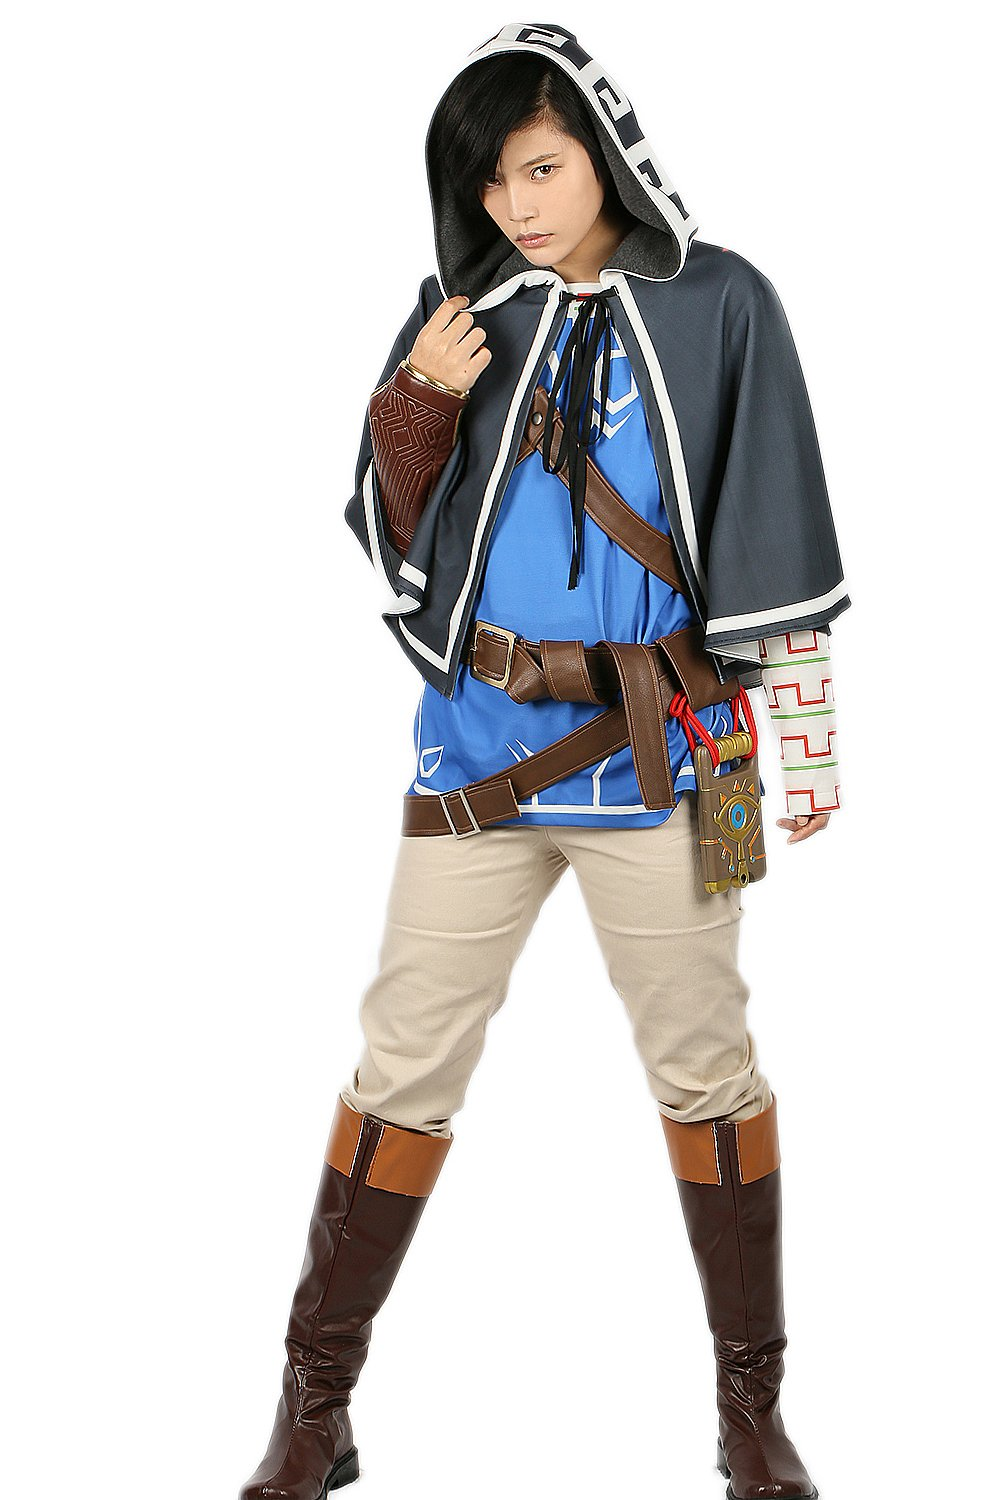 xcoser Link Costume Cloak & Tunic & Shirt & Pants & Belt Outfit For Halloween S